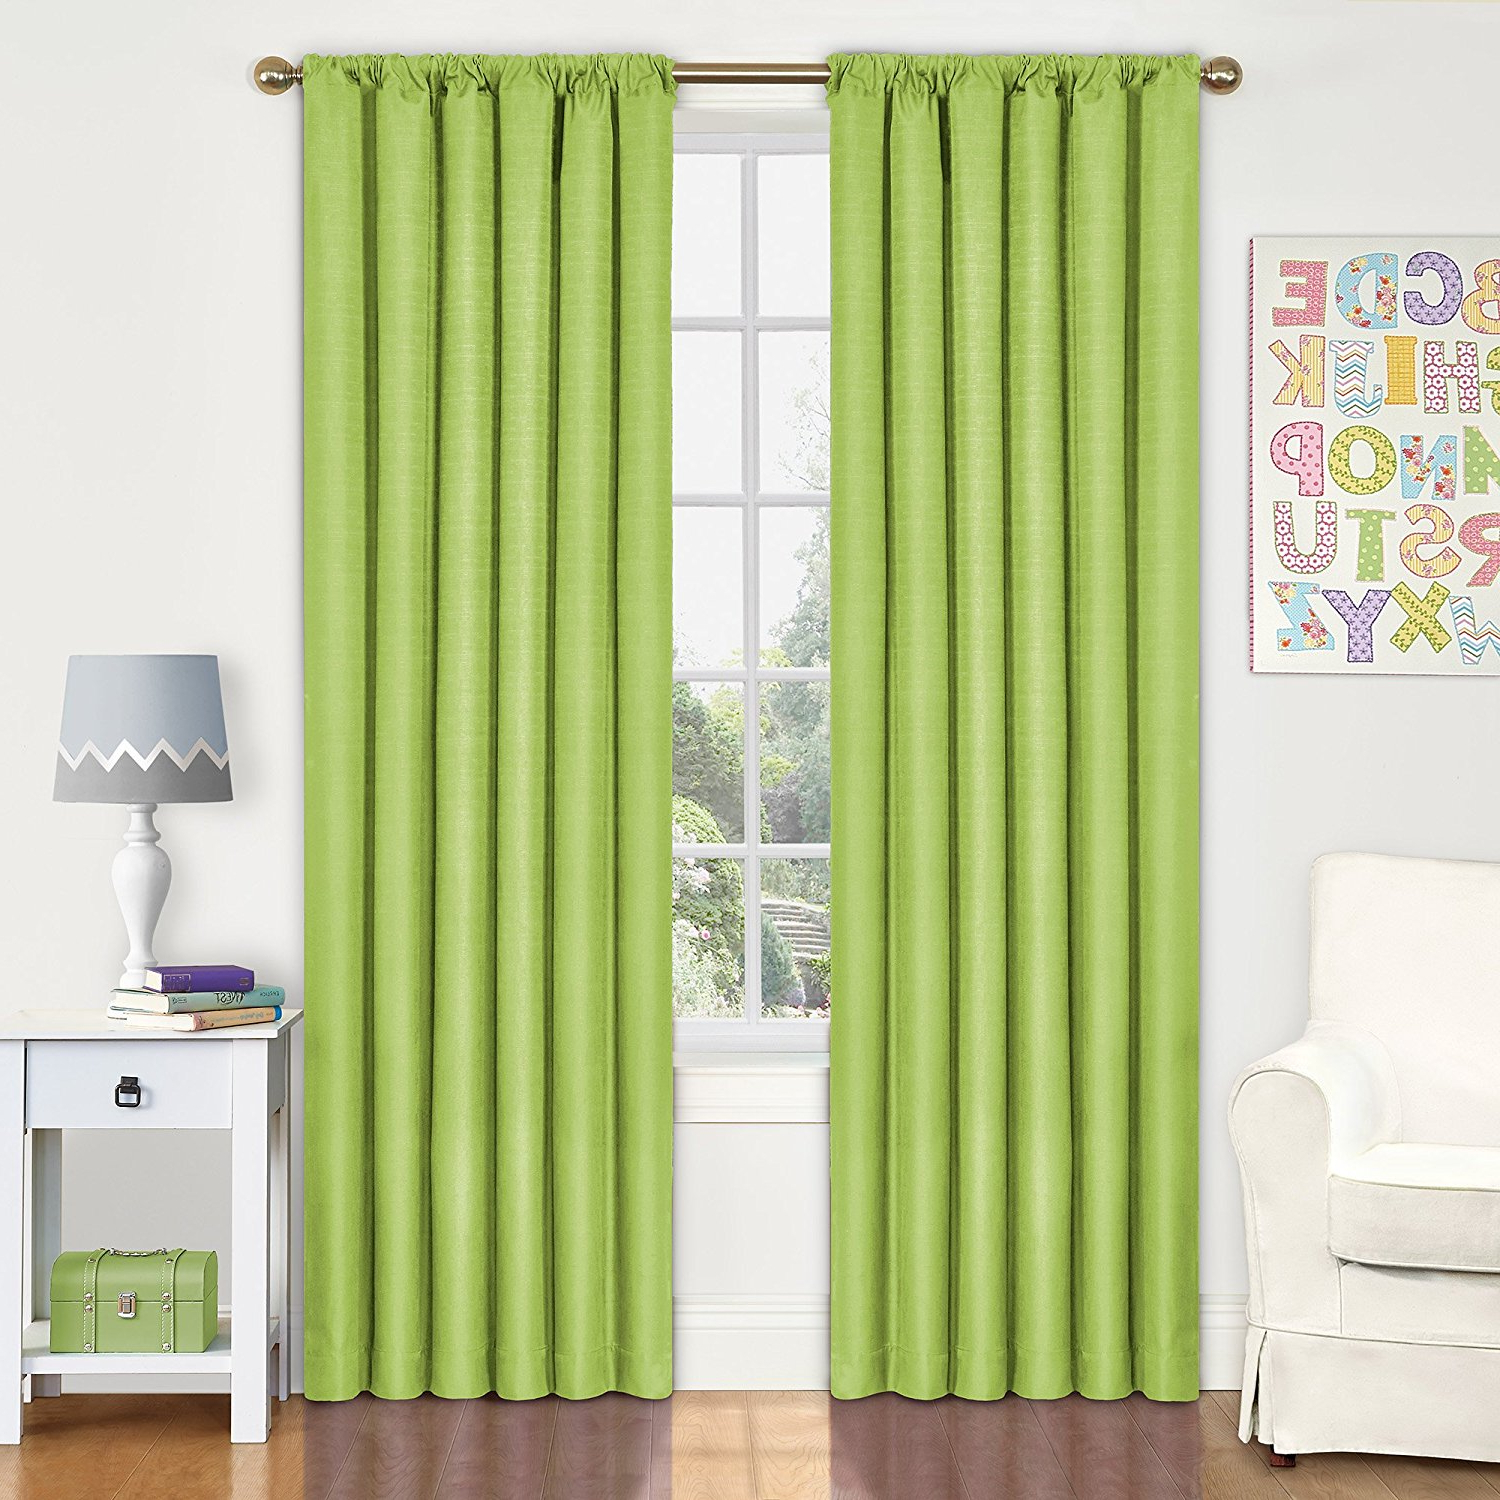 Eclipse Kendall Blackout Window Curtain Panels Intended For 2020 Eclipse 10707042x084rby Kendall 42 Inch84 Inch Thermaback Blackout Single Panel, Rubyeclipse Curtains Ship From Us (View 14 of 20)